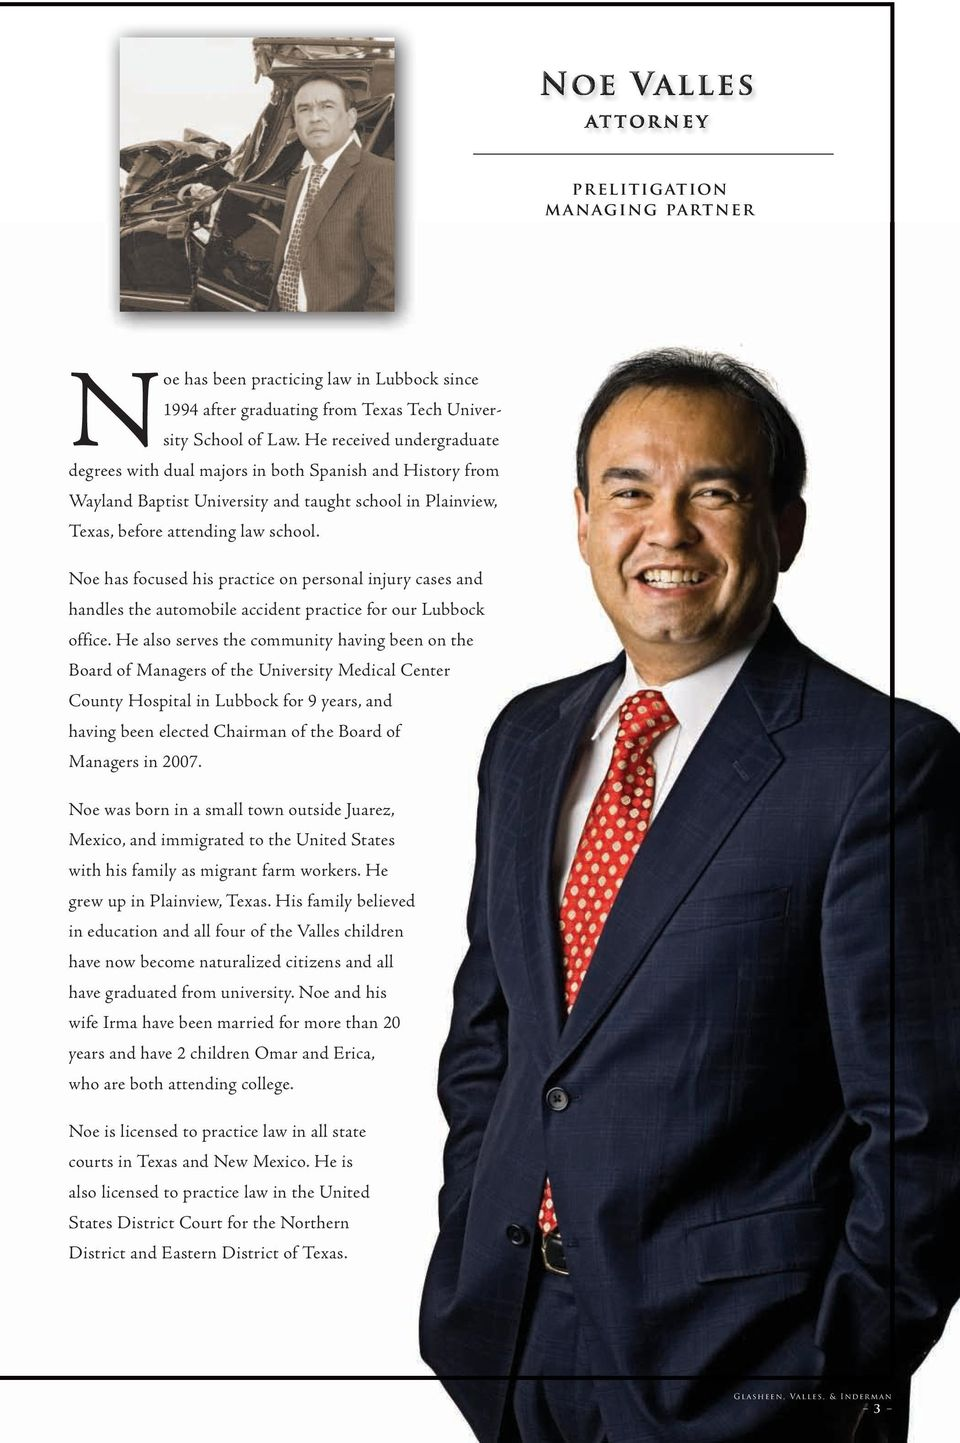 Noe has focused his practice on personal injury cases and handles the automobile accident practice for our Lubbock office.